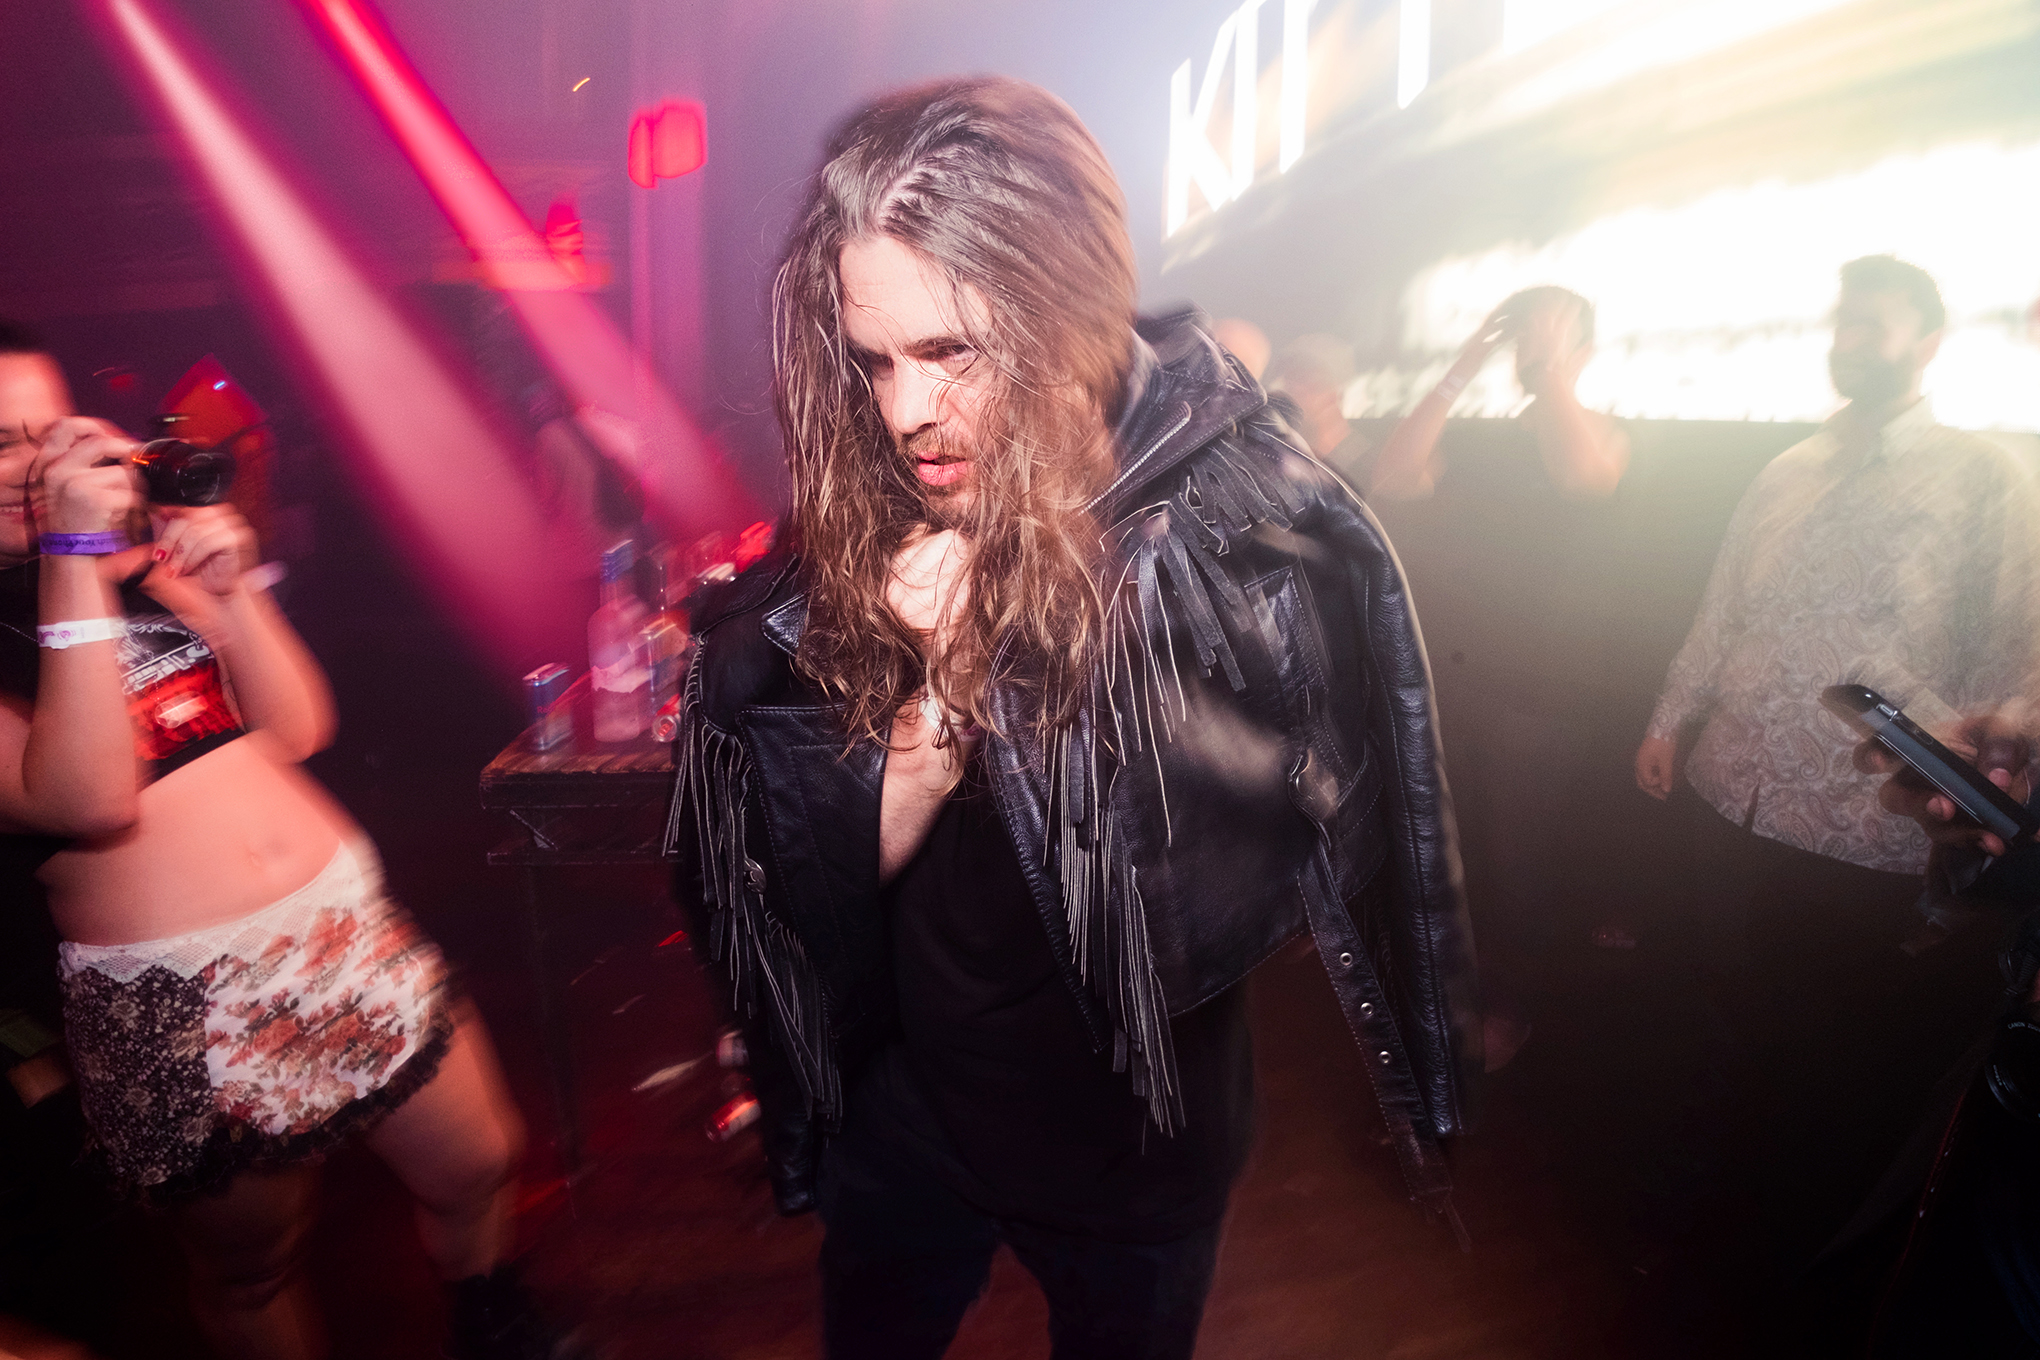 webster_tommytrash-6.jpg